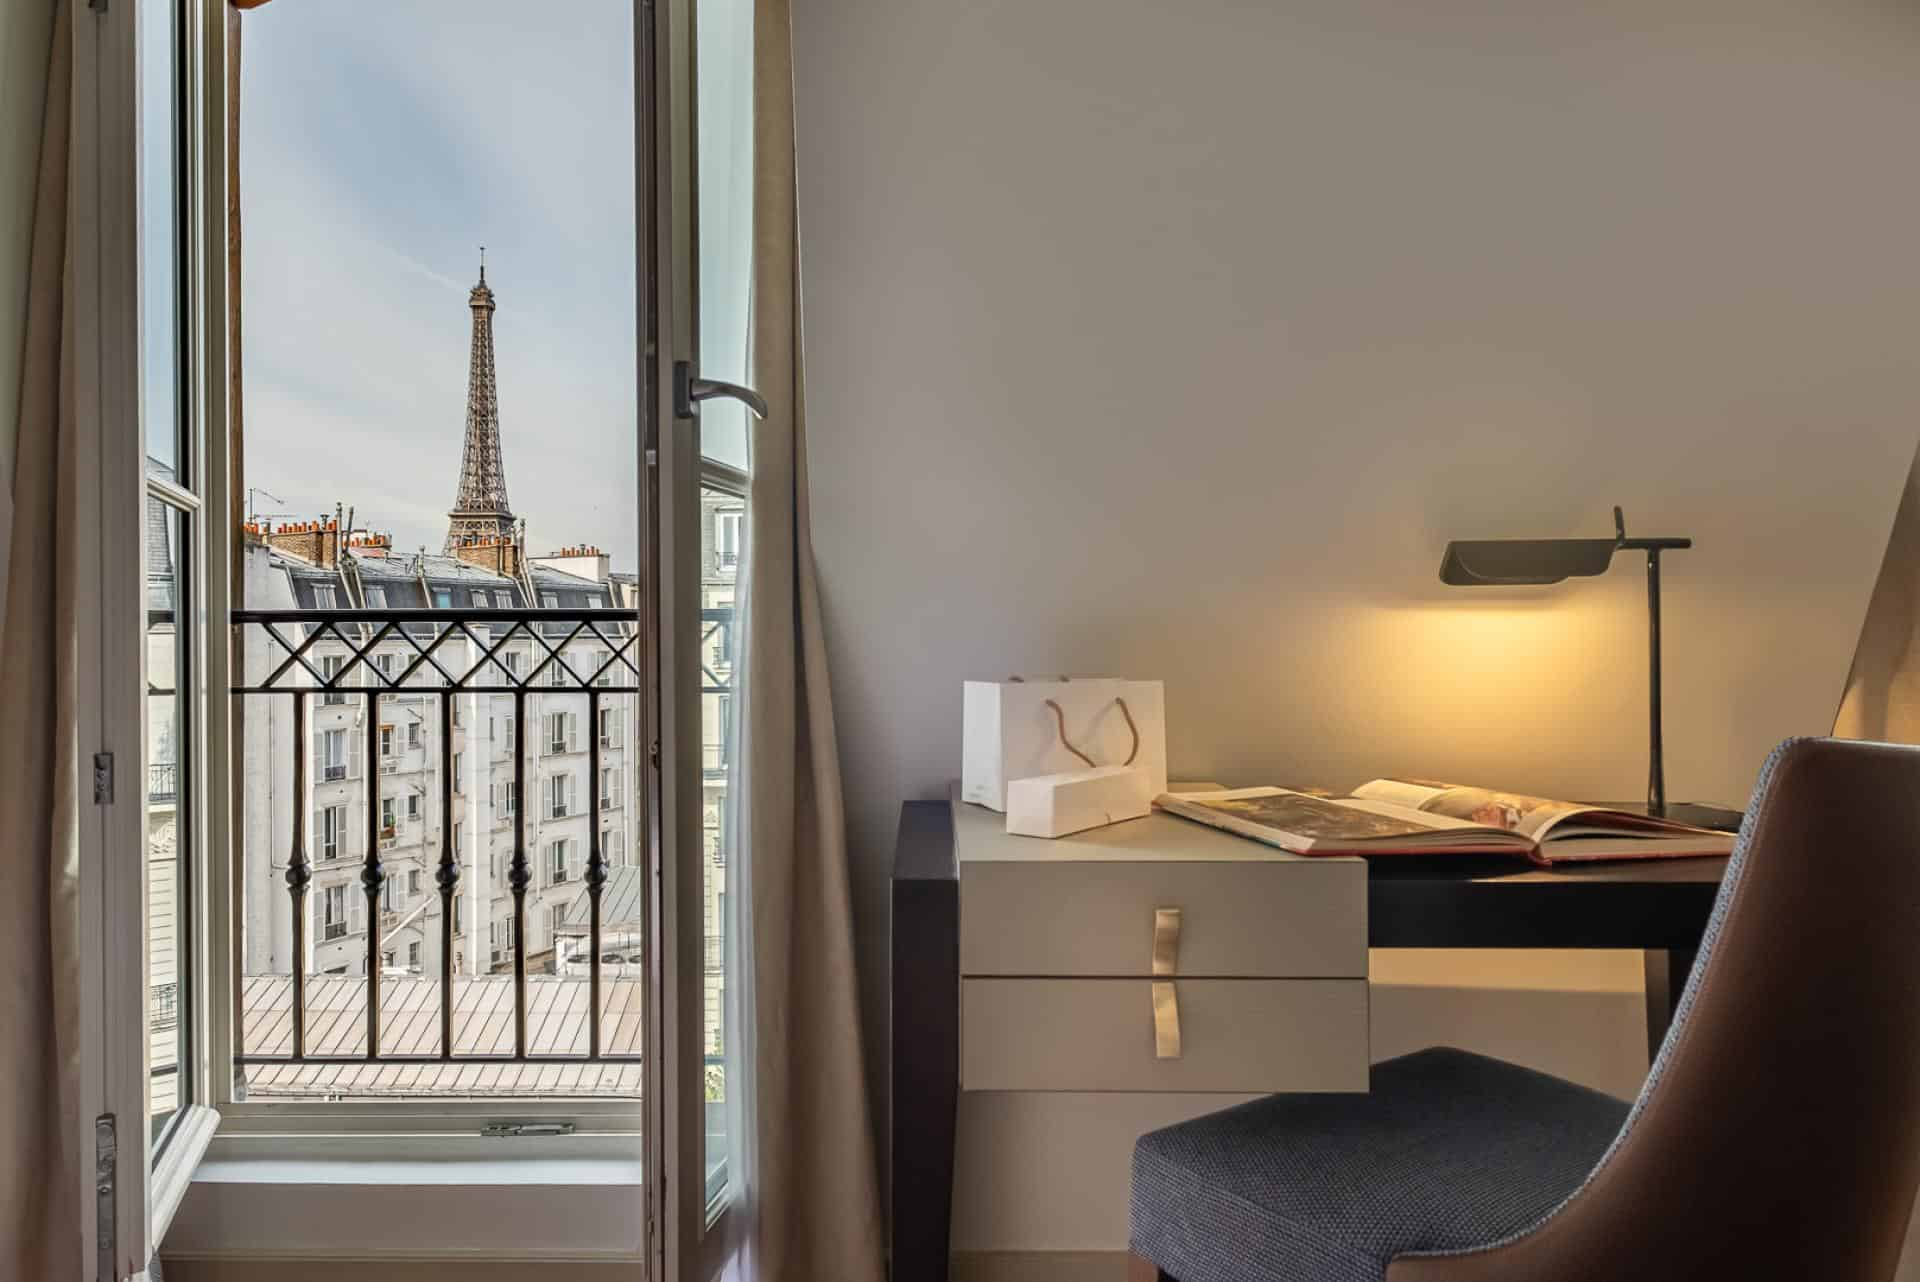 hotel le walt paris eiffel tower view